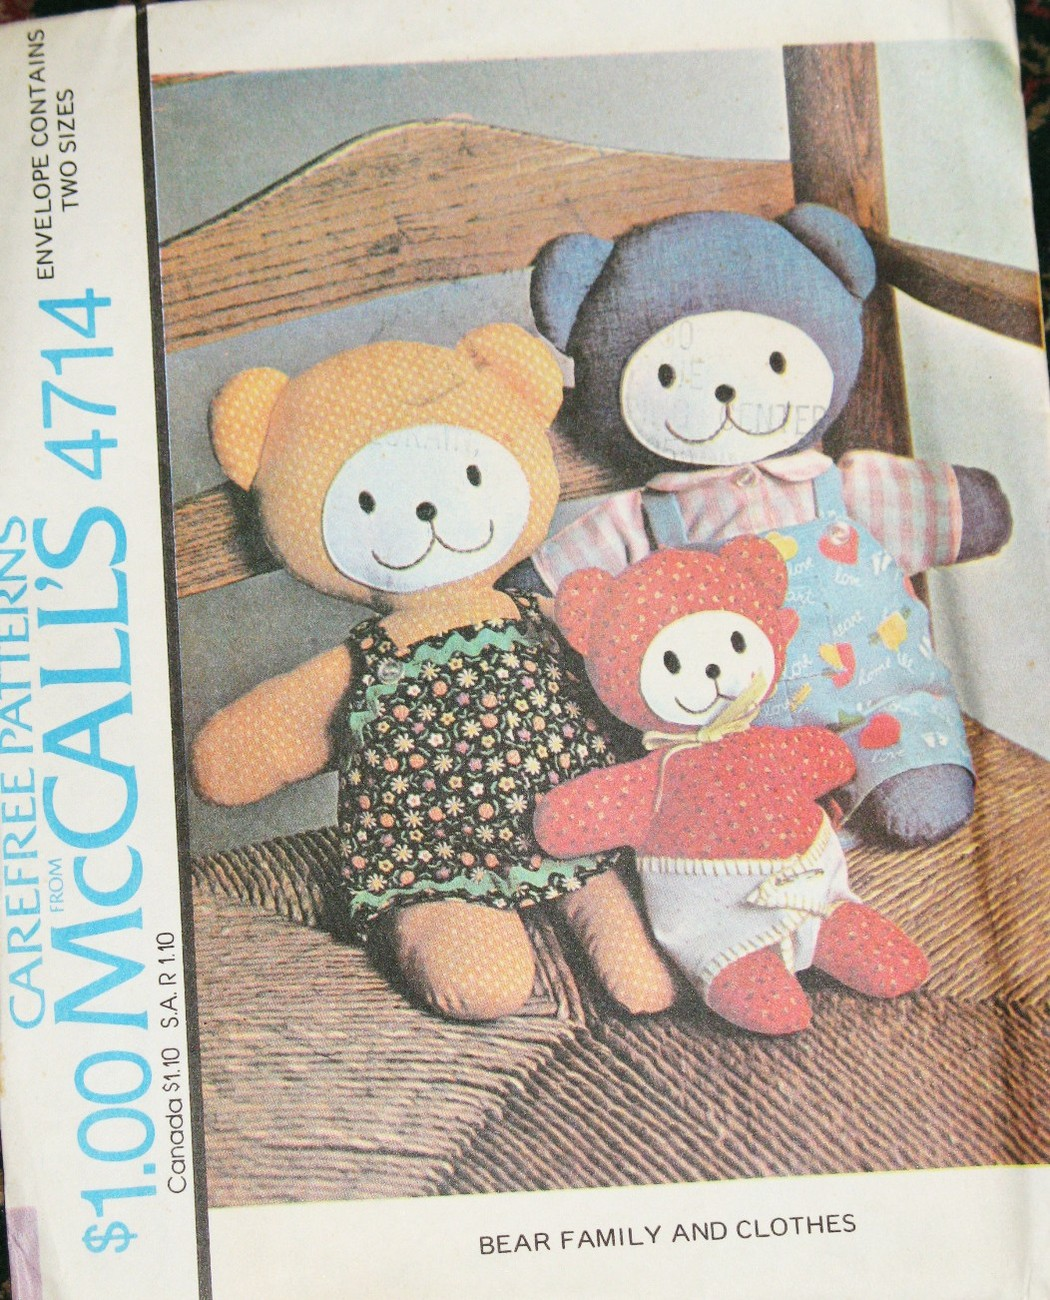 Vintage McCall's Pattern # 4714 / Bear Family and Clothes - $16.95